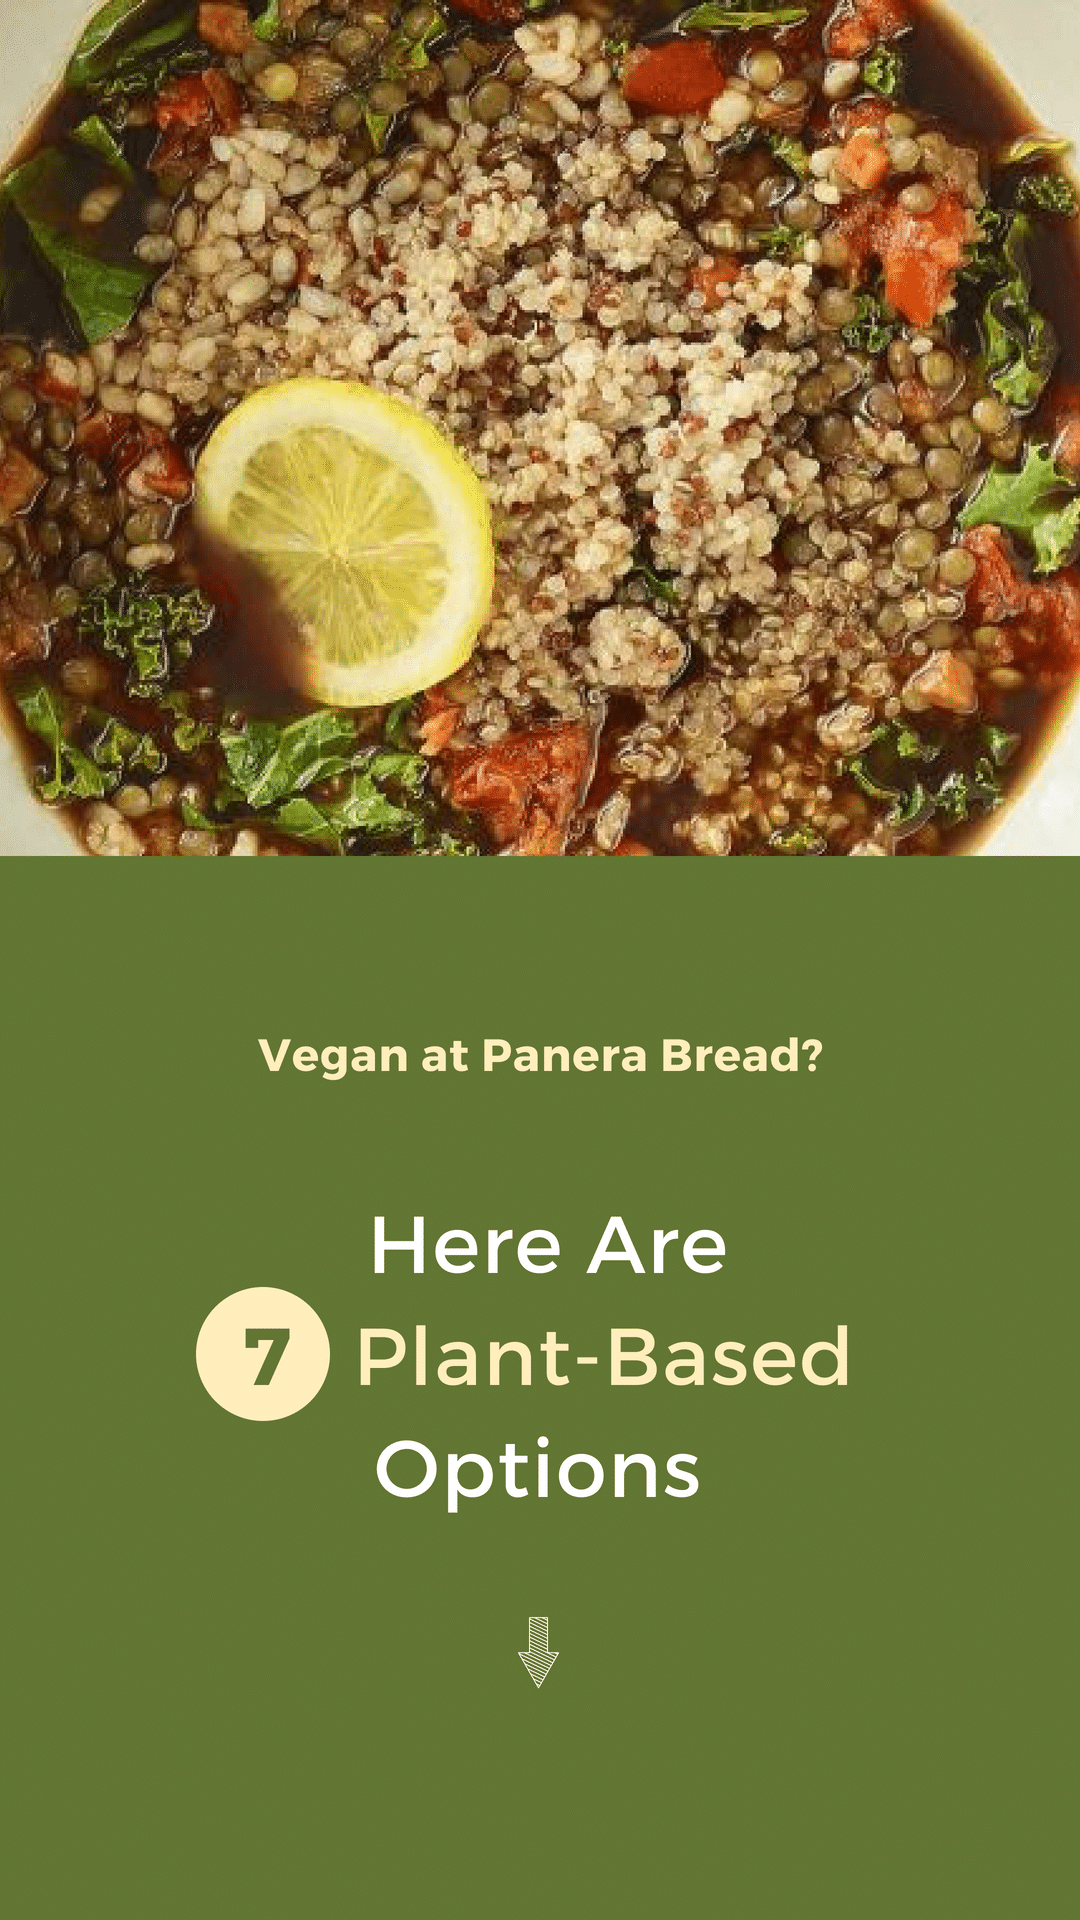 Vegan at Panera Bread? Here Are 7 Plant-Based Options